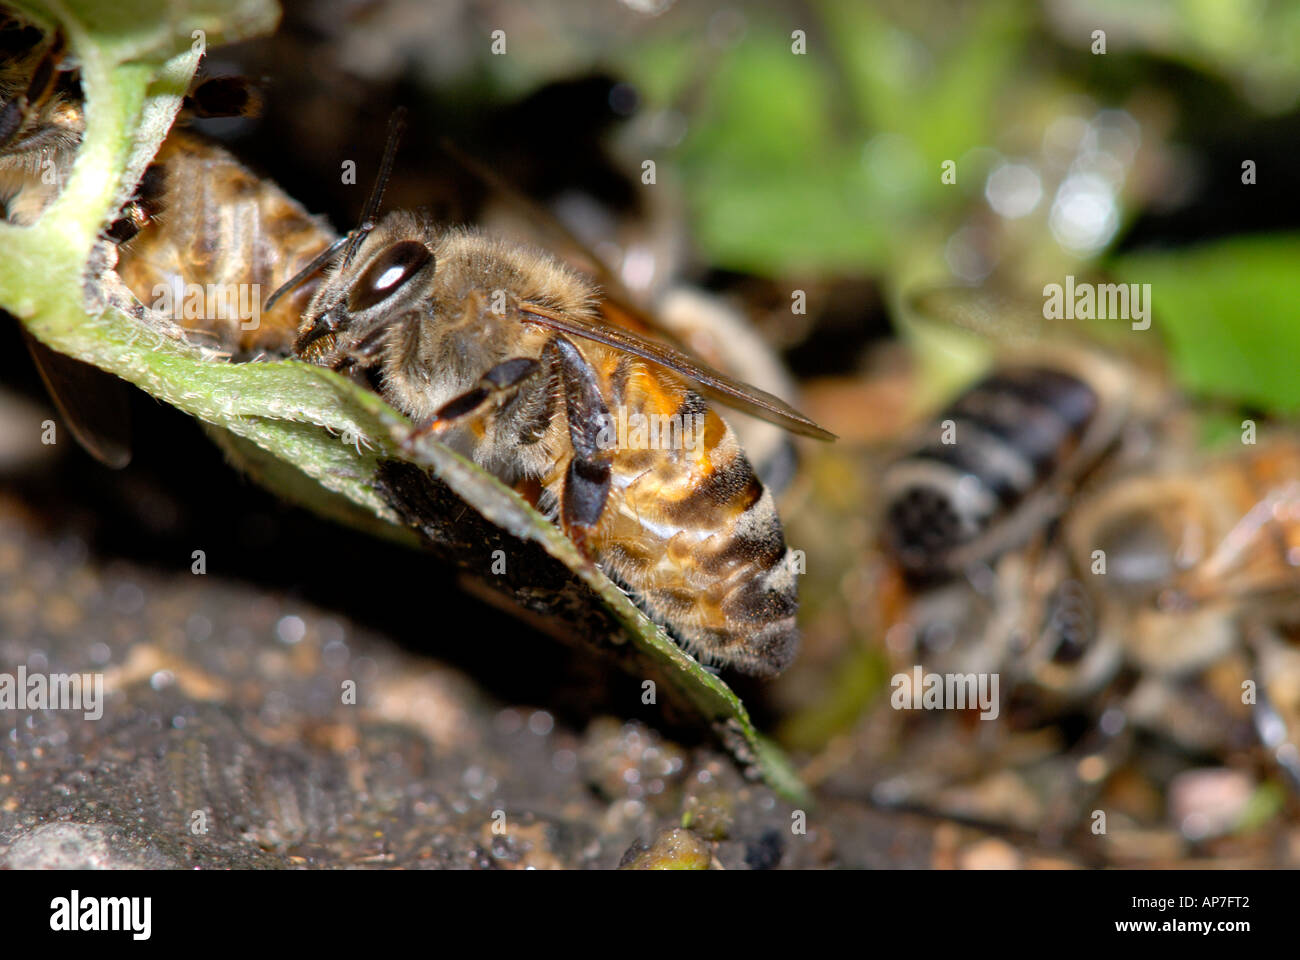 Honey Bee, Apis Mellifera getting a drink at a water hole. Honey bees drink a lot of water. - Stock Image